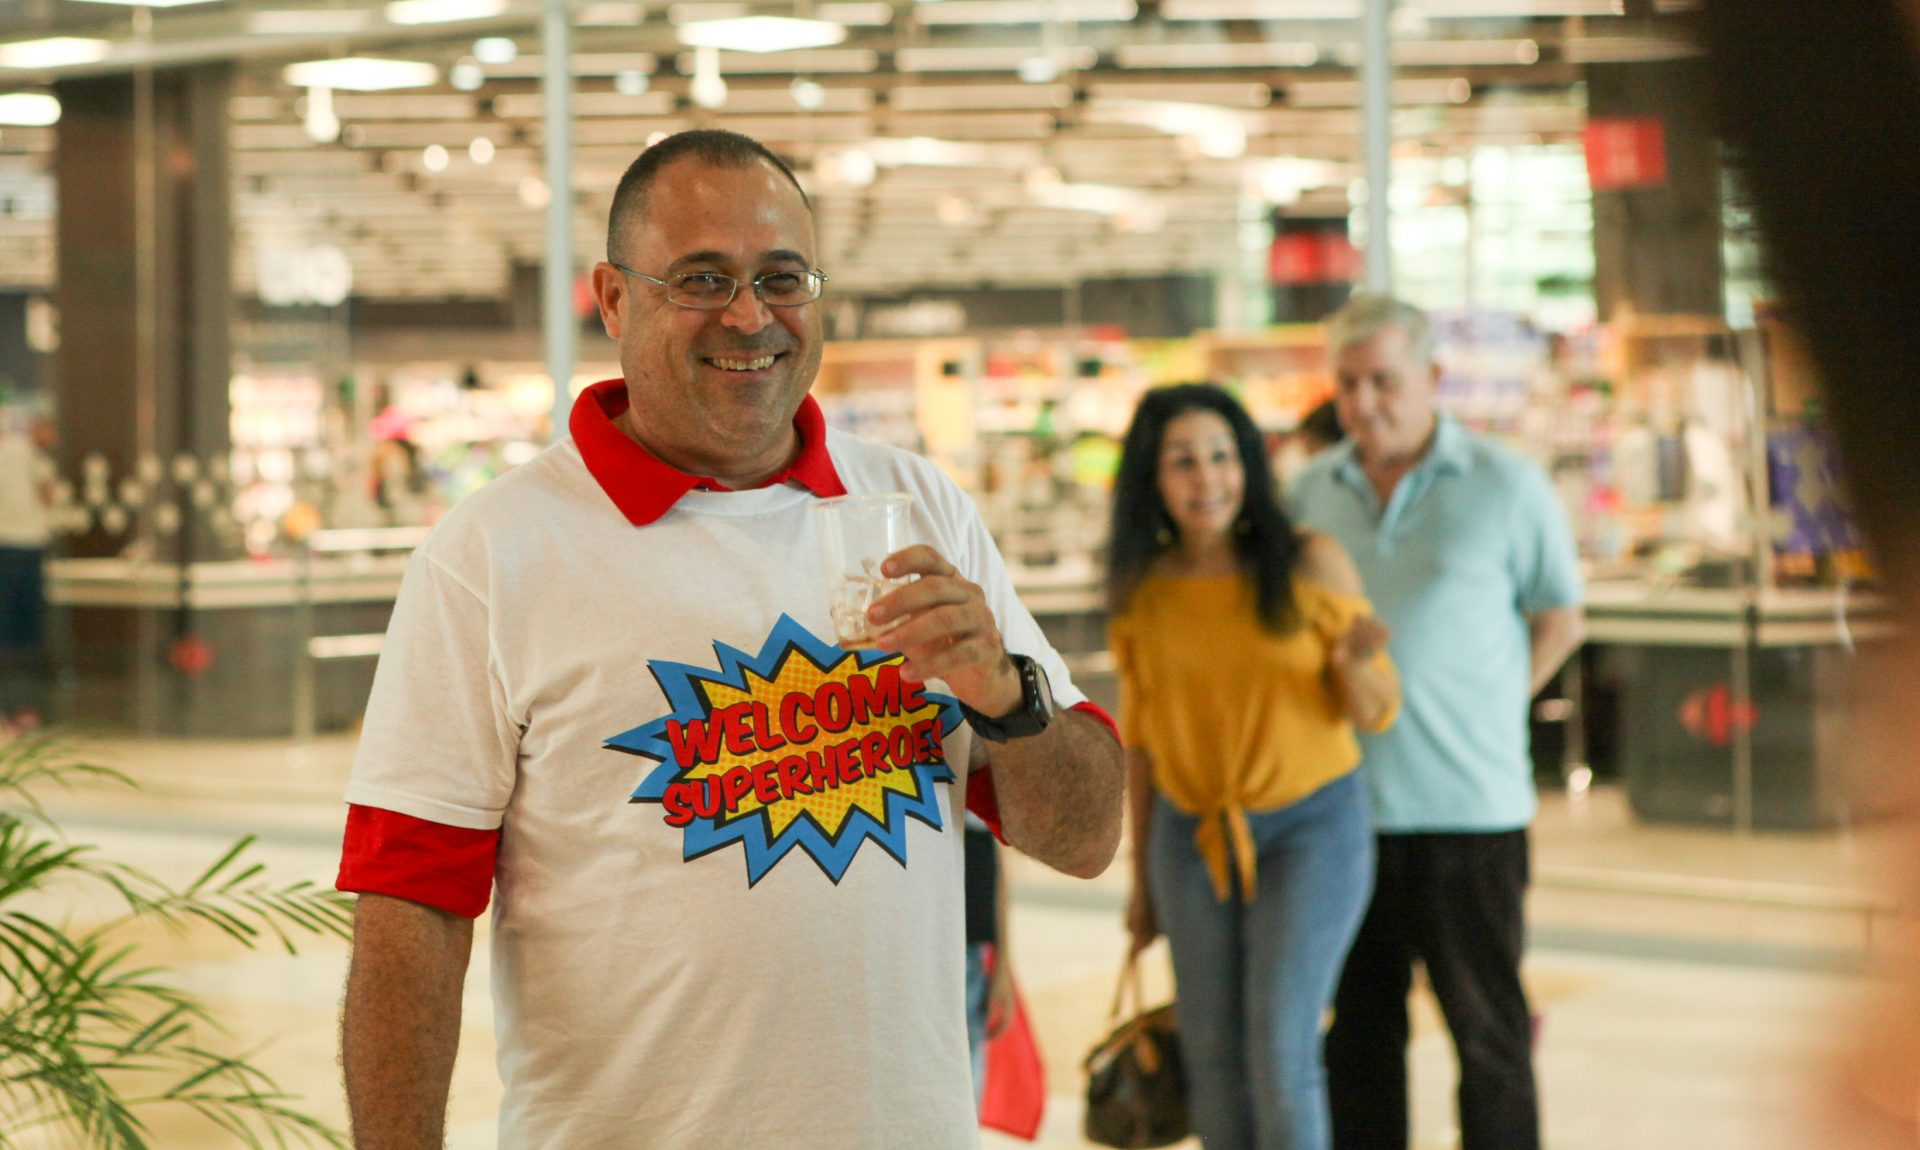 """Rolando Galarraga:  """"To me, RMHC means waking up every day knowing we are making a difference."""""""